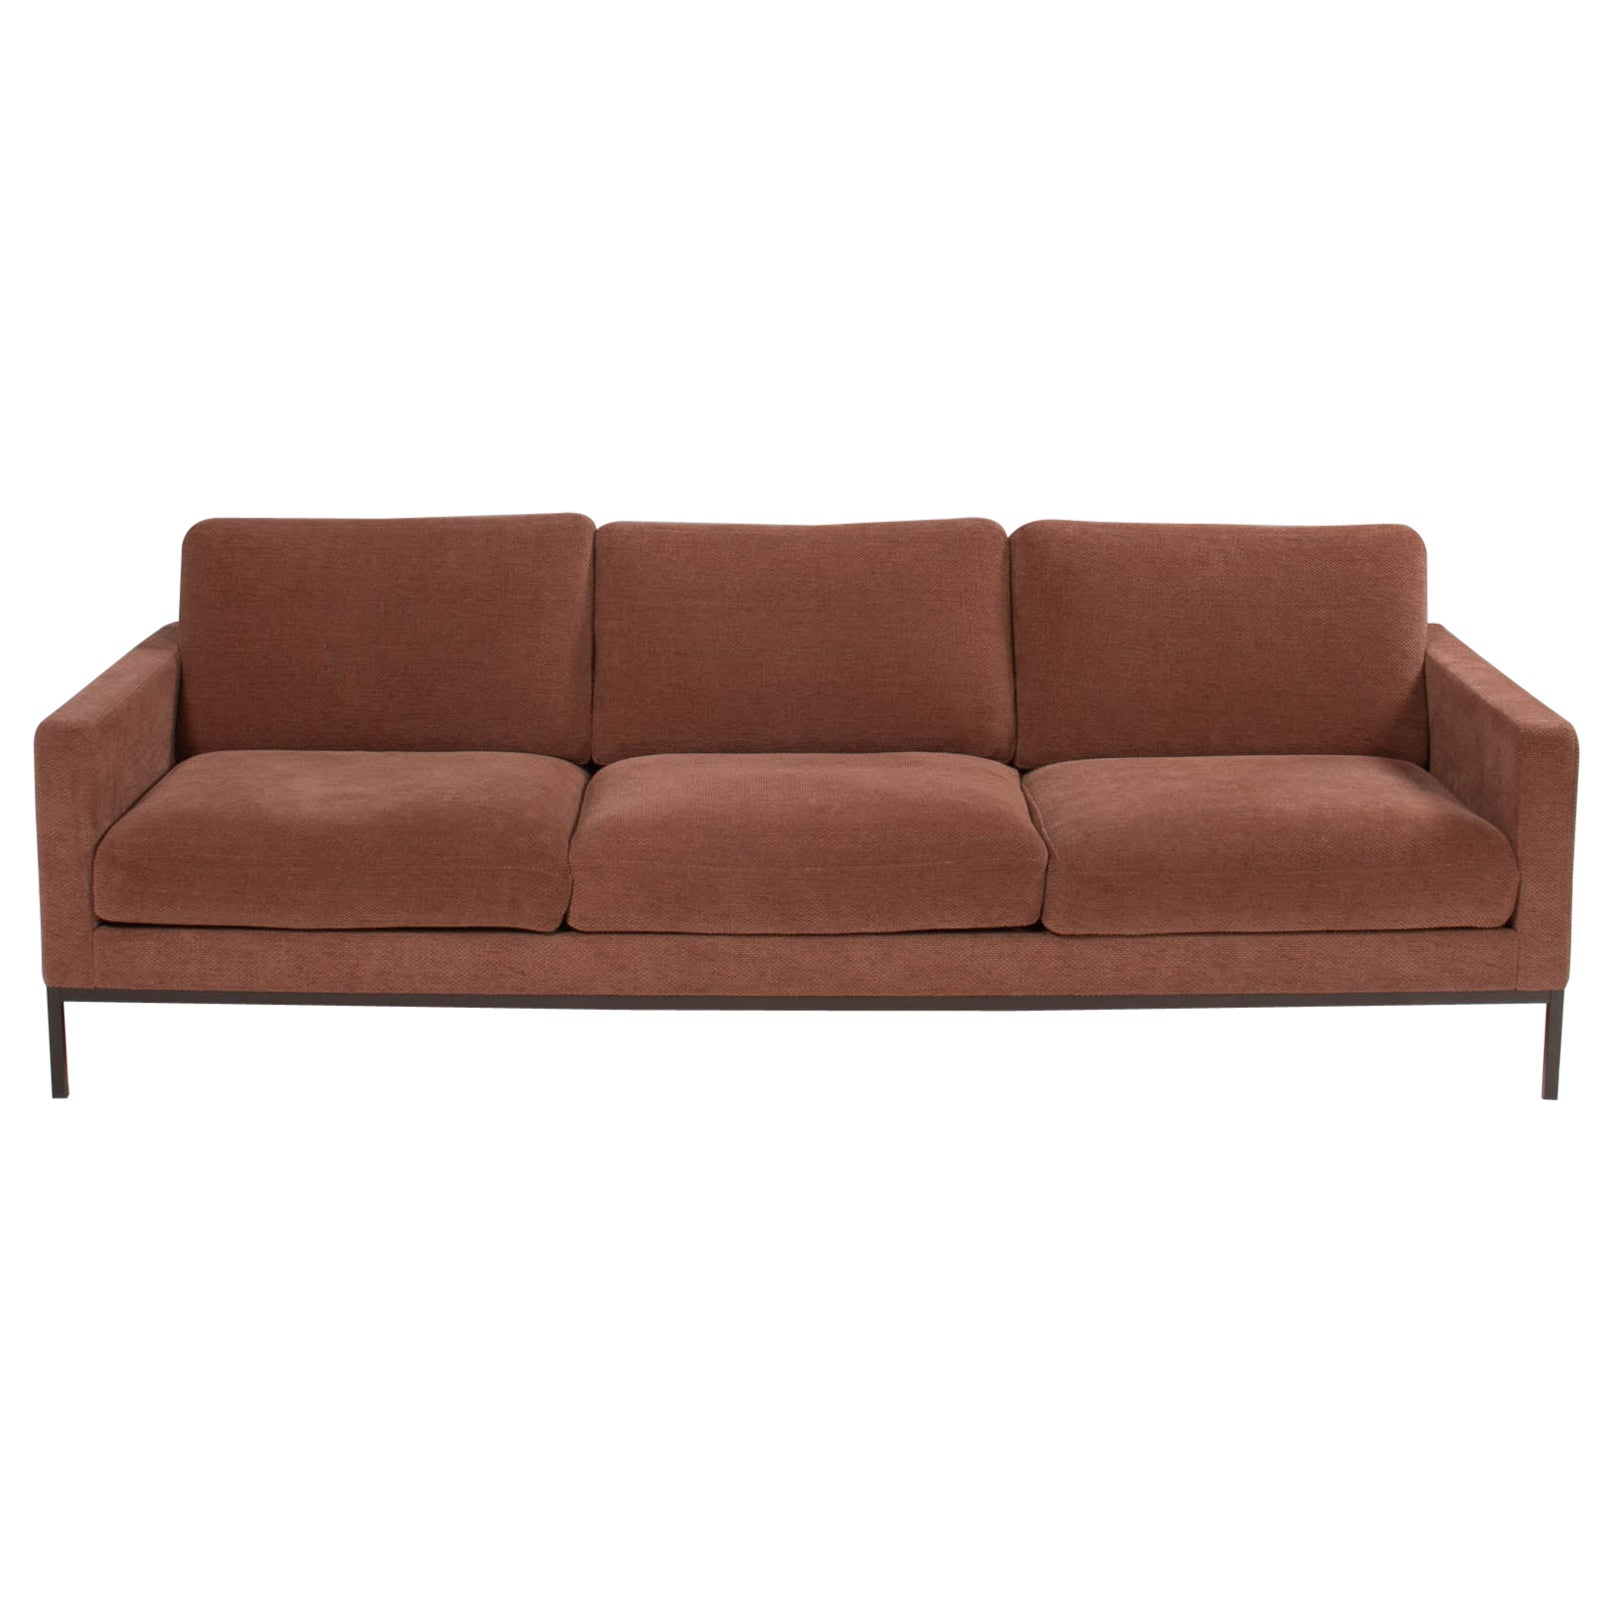 Florence Knoll for Knoll Dusky Pink Fabric Relax Sofa